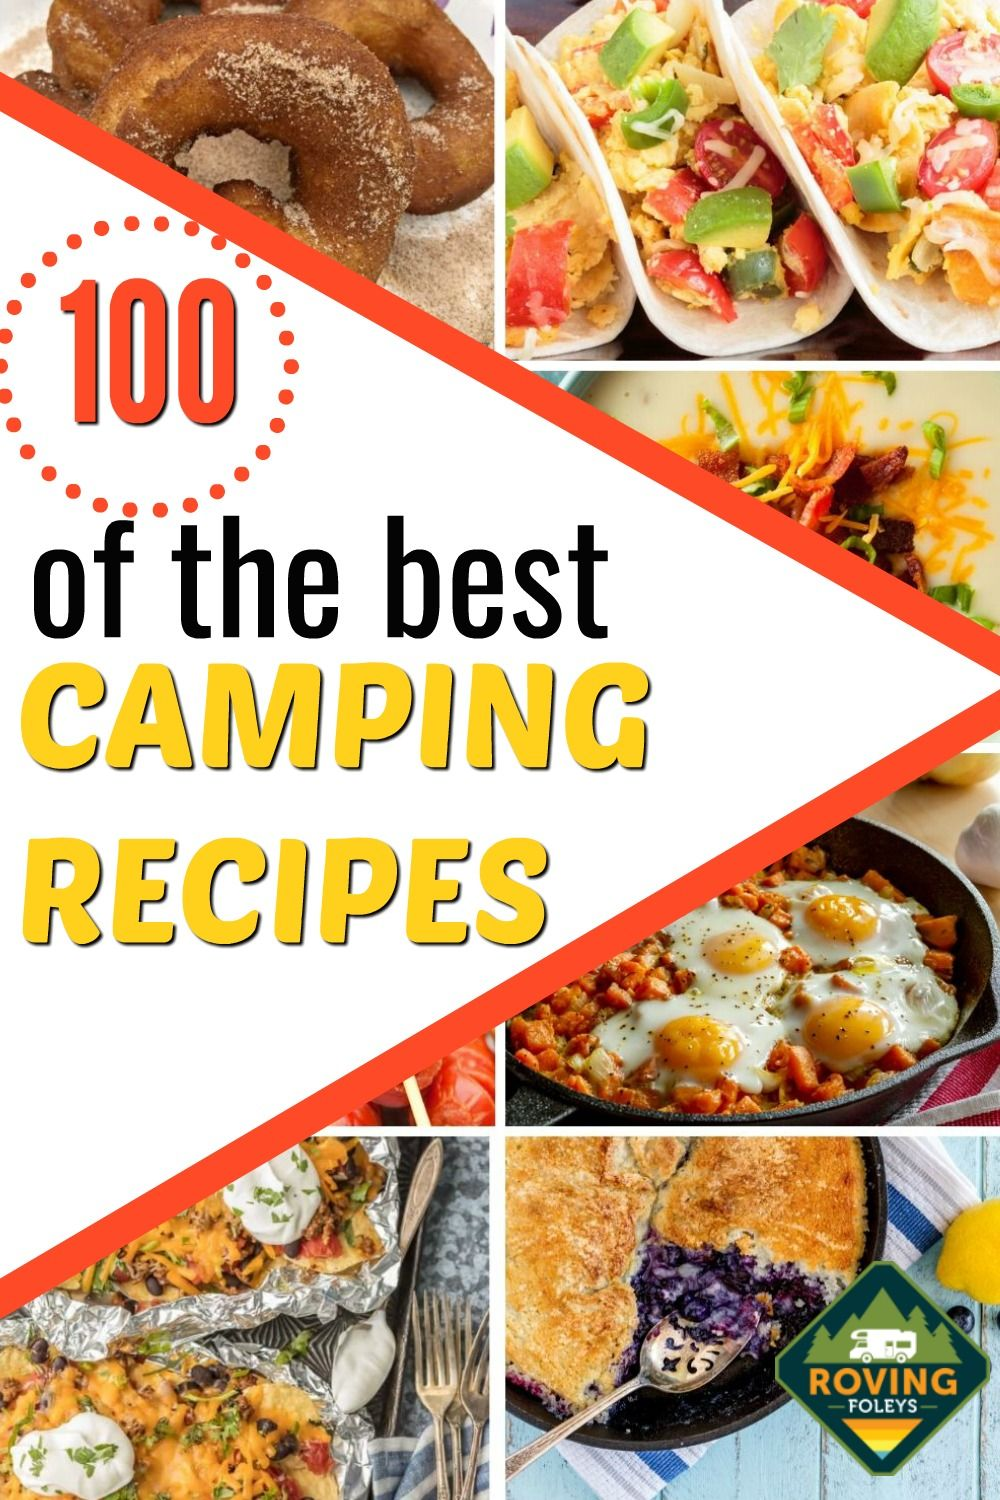 100 Camping Meals The Envy Of The Campground The Roving Foley S In 2020 Easy Camping Meals Camping Meals Best Camping Meals